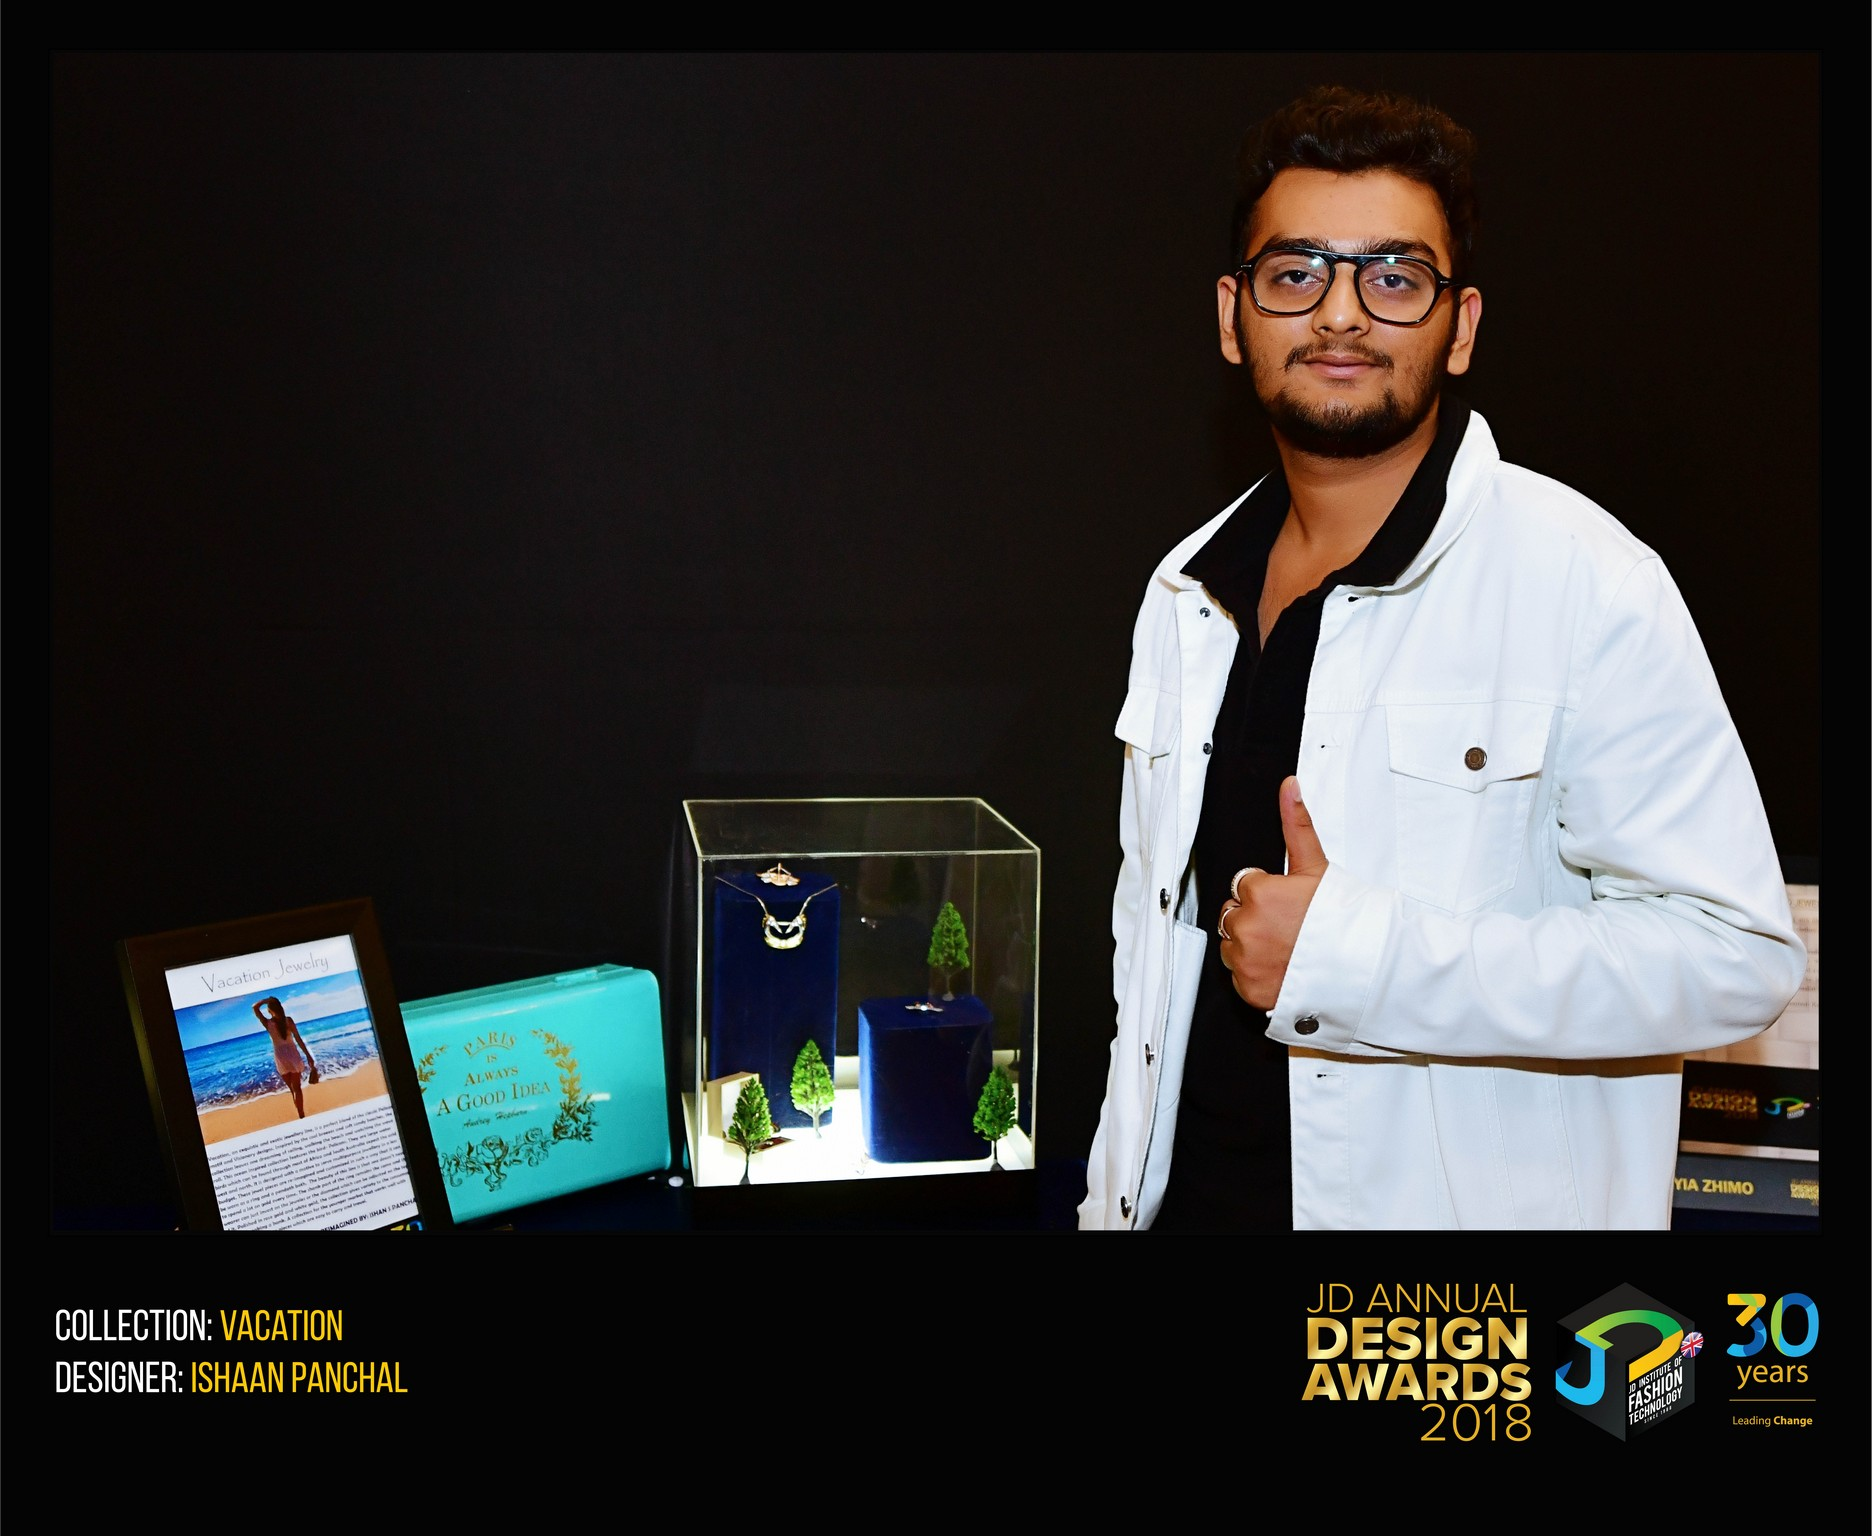 vacation - Vacation2 - Vacation – Change – JD Annual Design Awards 2018